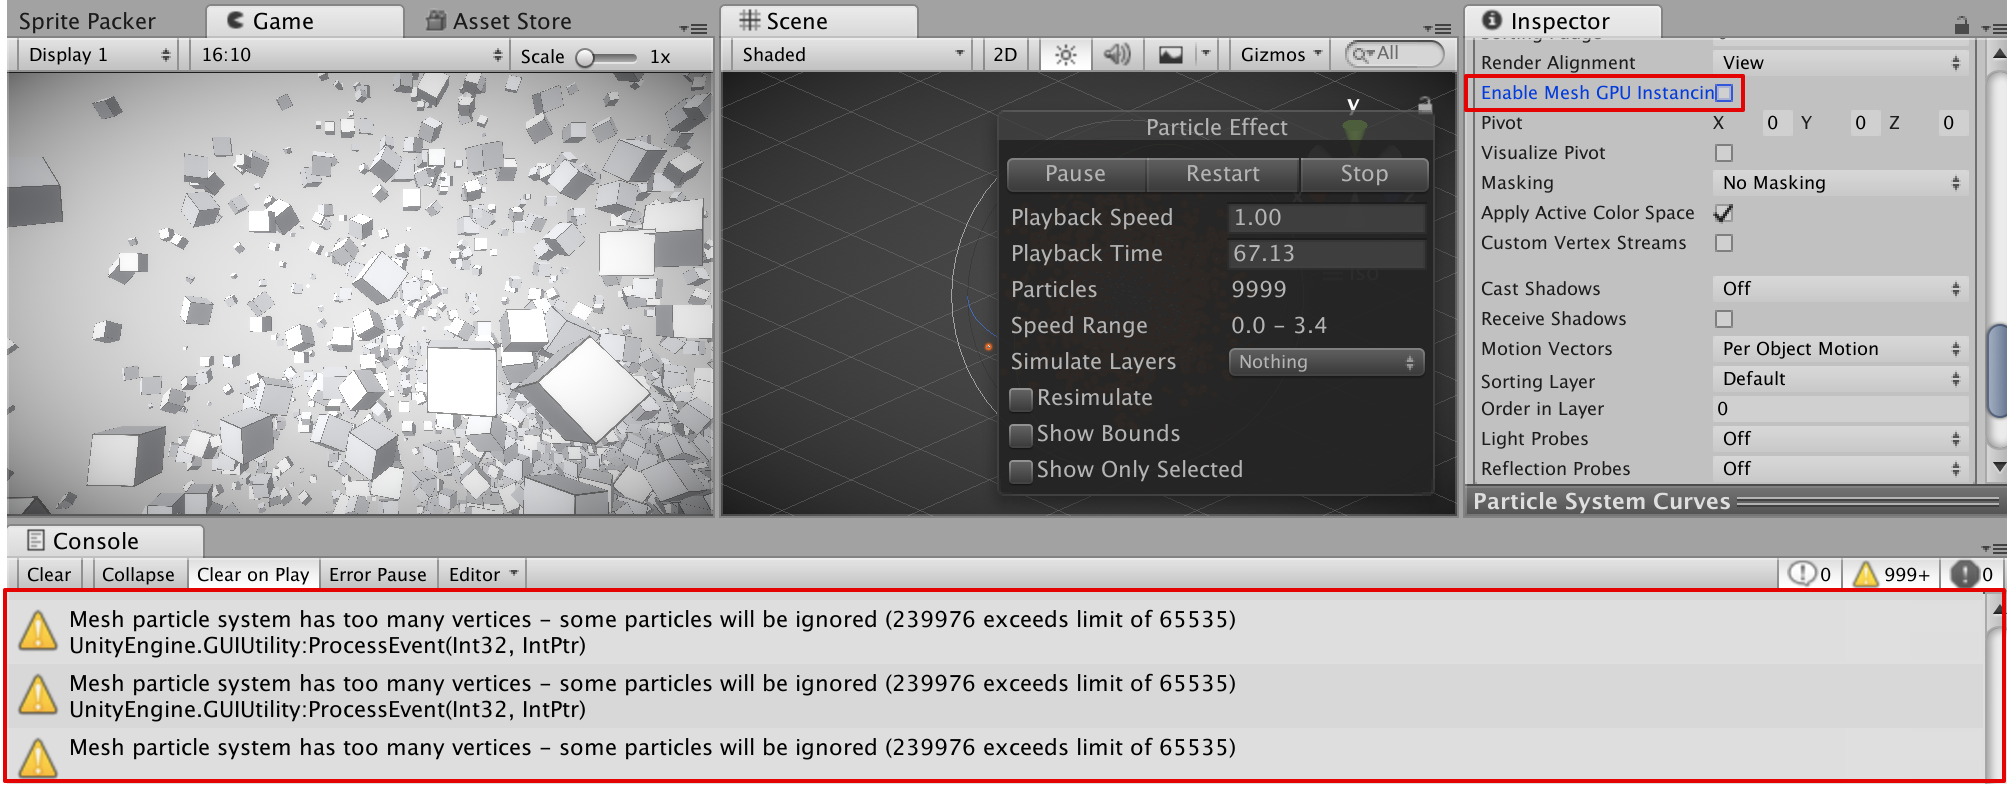 Unity 2018.2.7f1 Personal (64bit) - [PREVIEW PACKAGES IN USE] - SampleScene.unity - UnityParticleMesh - PC, Mac & Linux Standal… 2018-10-06 14-22-05.png